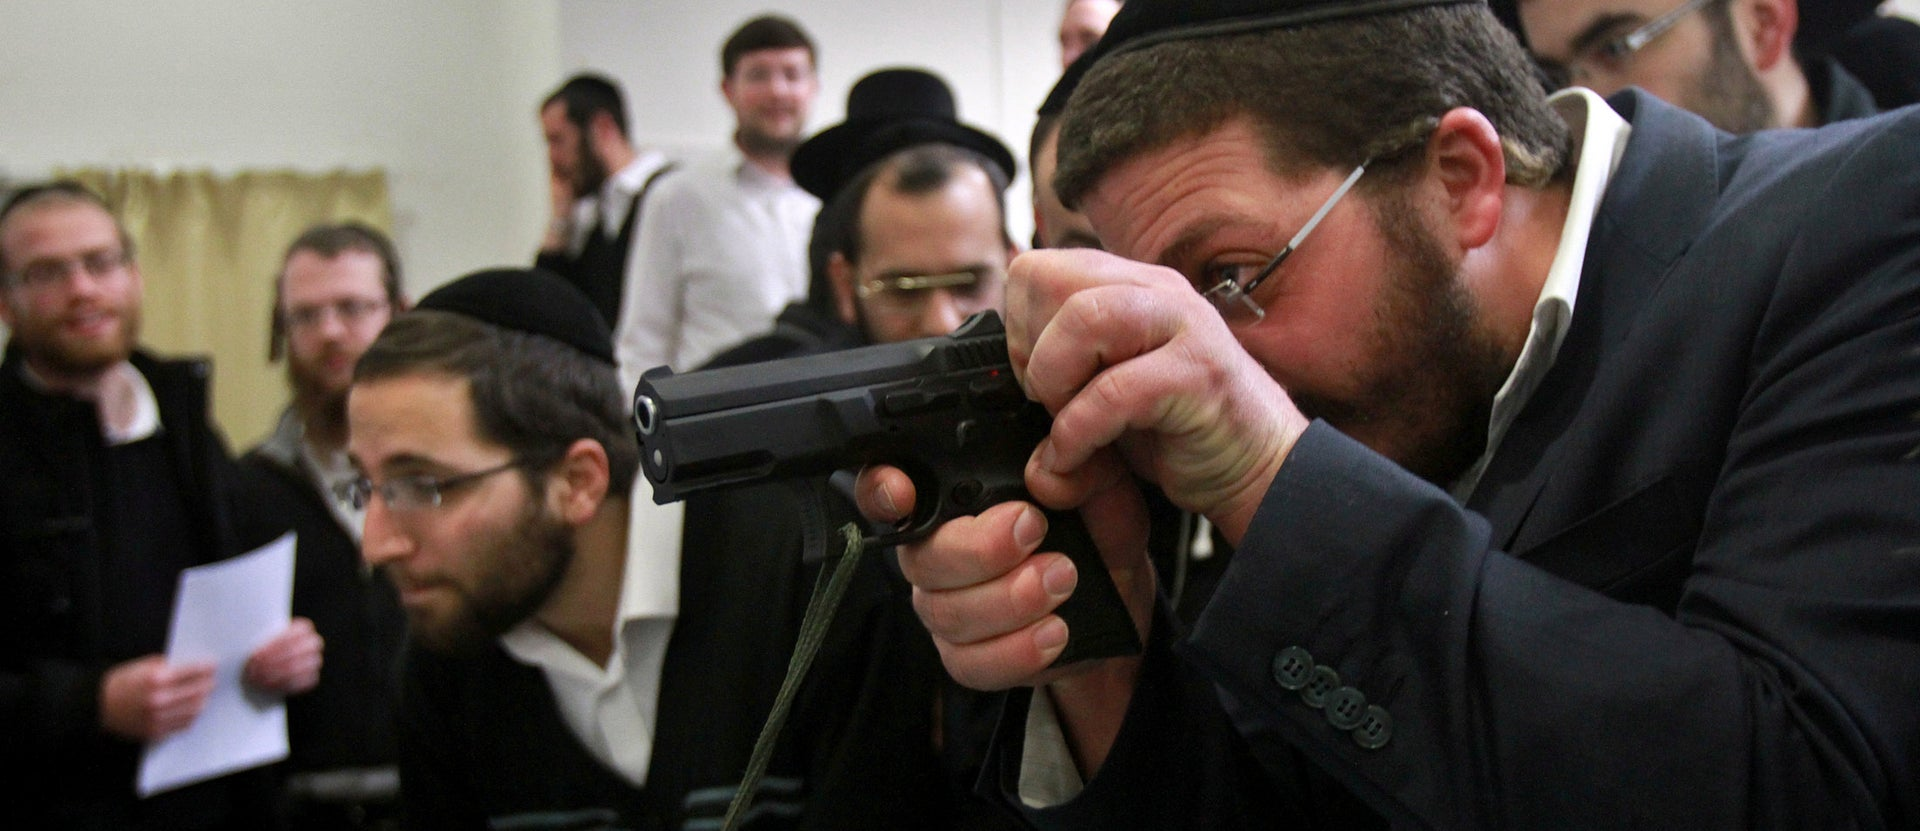 A new issue close to the American right, also formerly unheard of in Israeli politics, was recently added to the religious right's agenda: gun rights